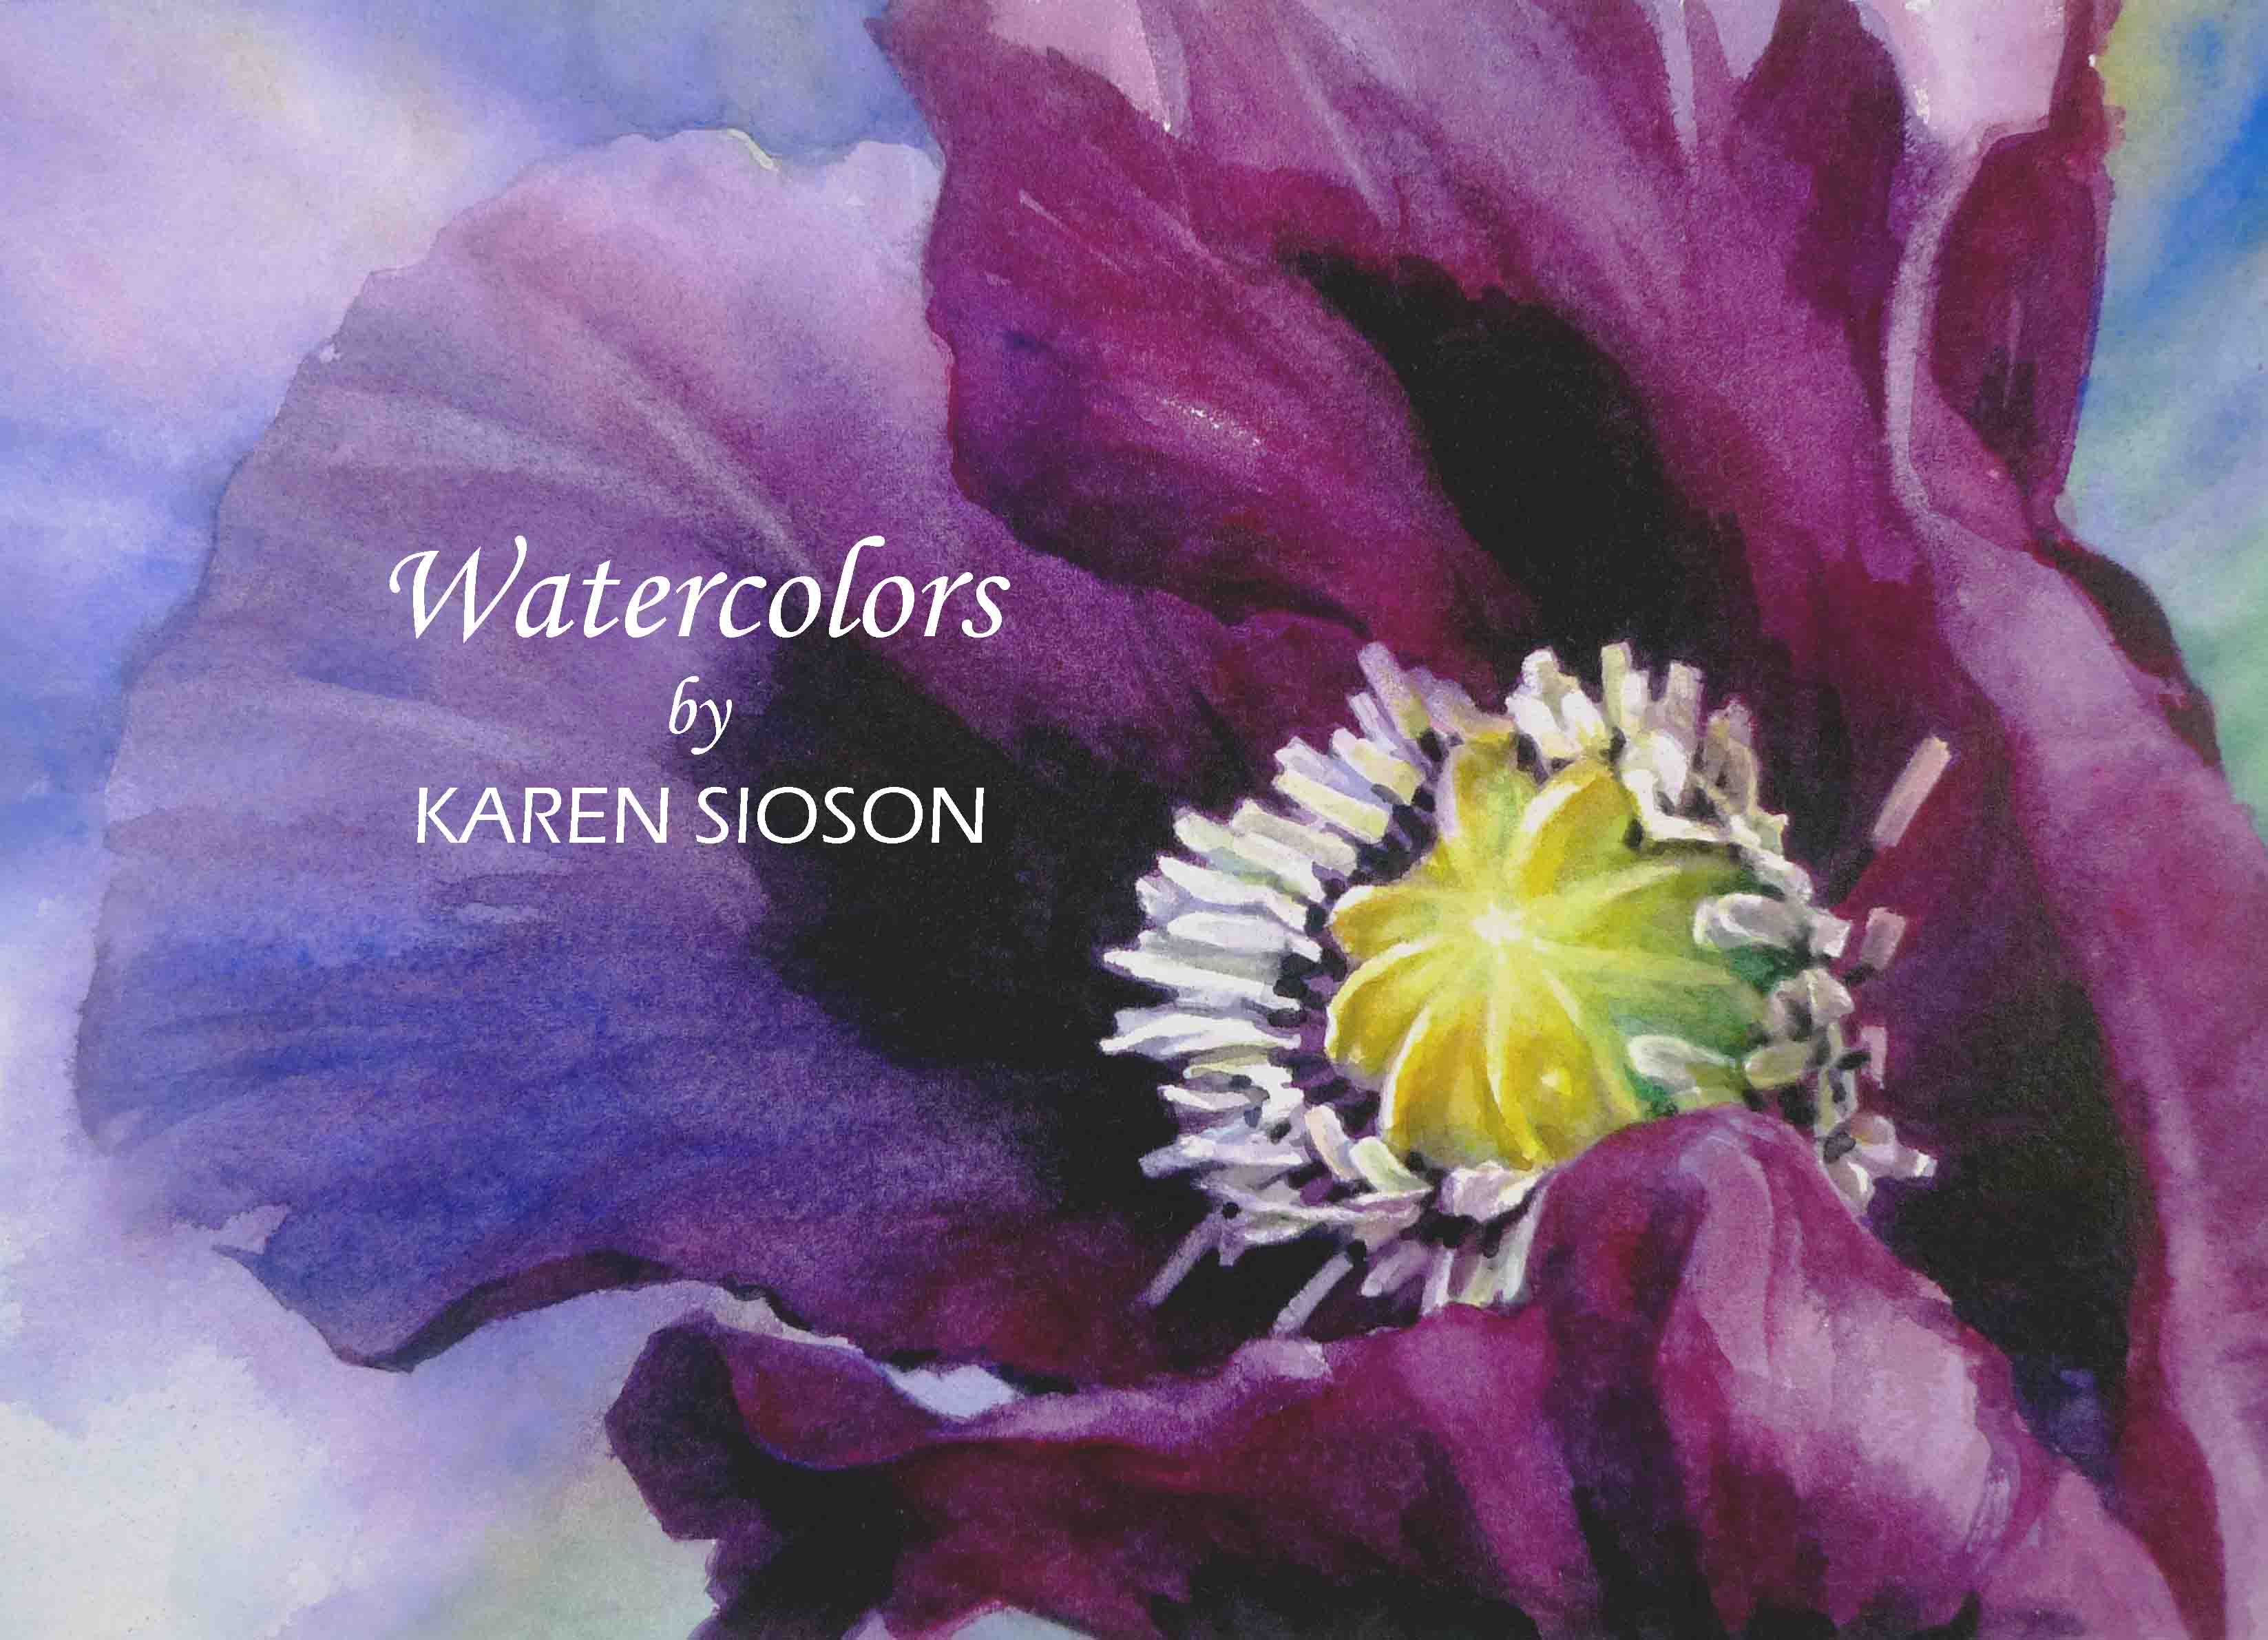 karensioson_cover_s